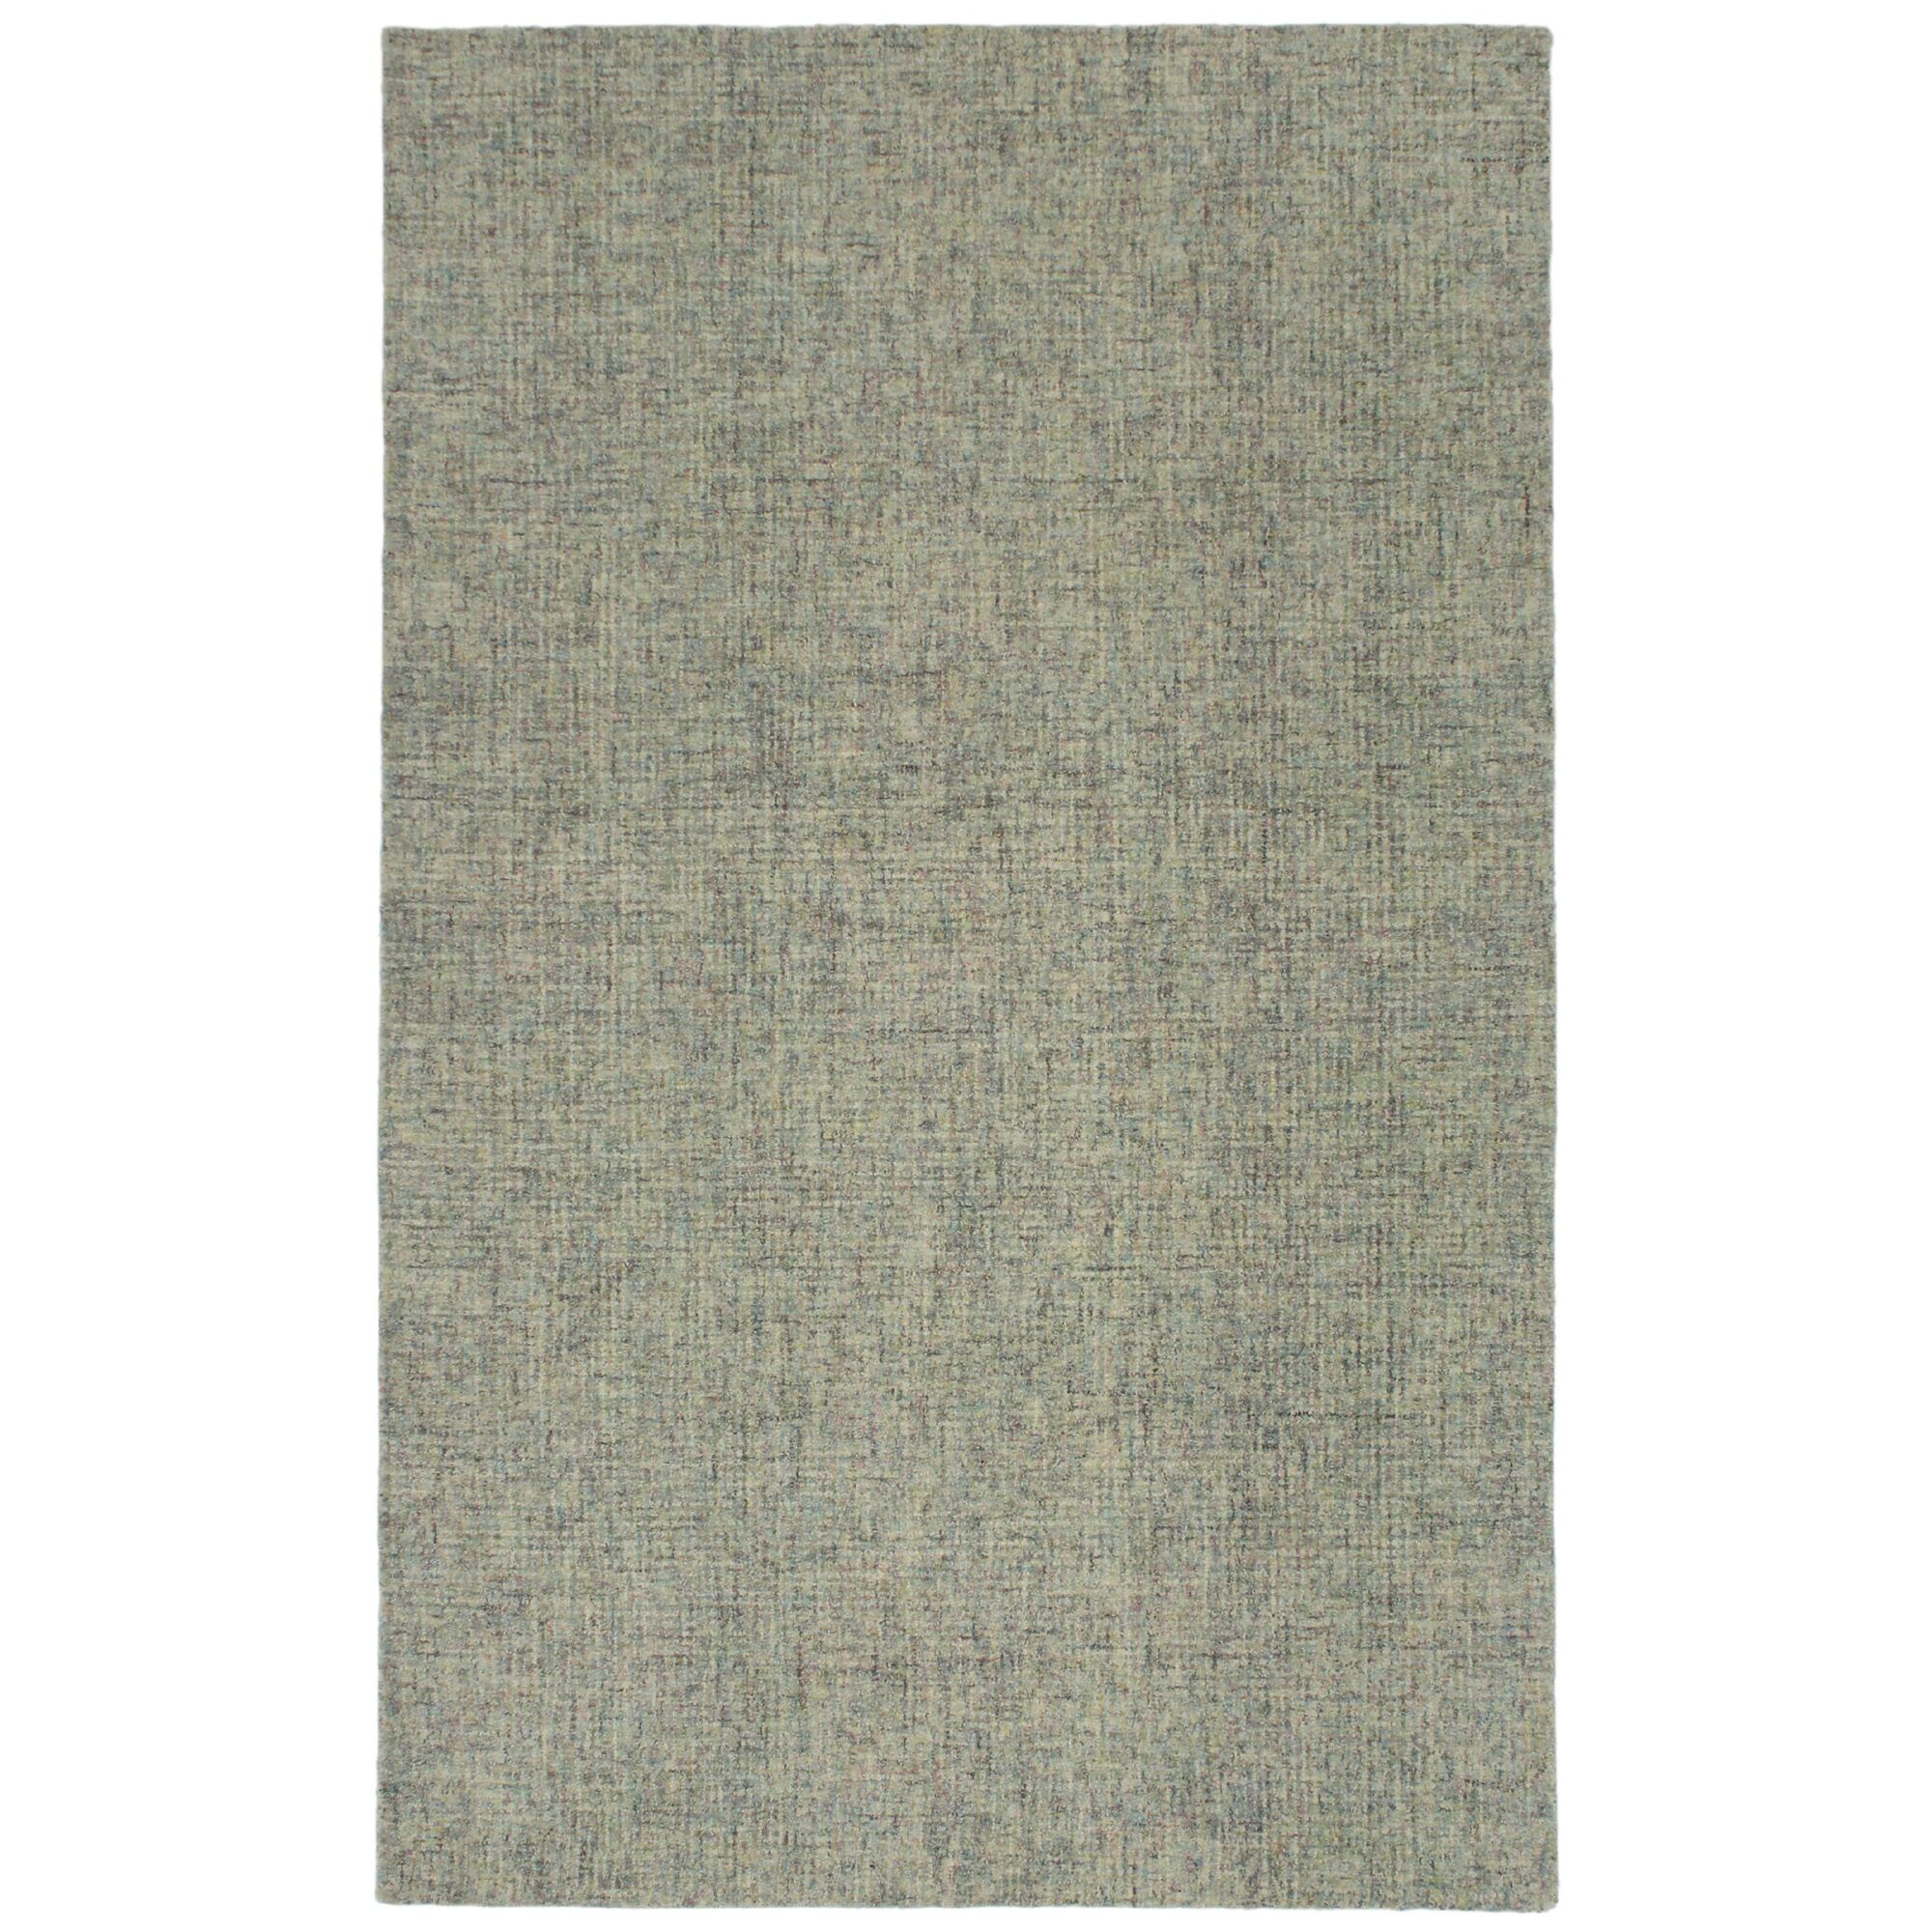 Hunsberger Hand-Woven Wool Gray Area Rug Rug Size: Rectangle 7'5